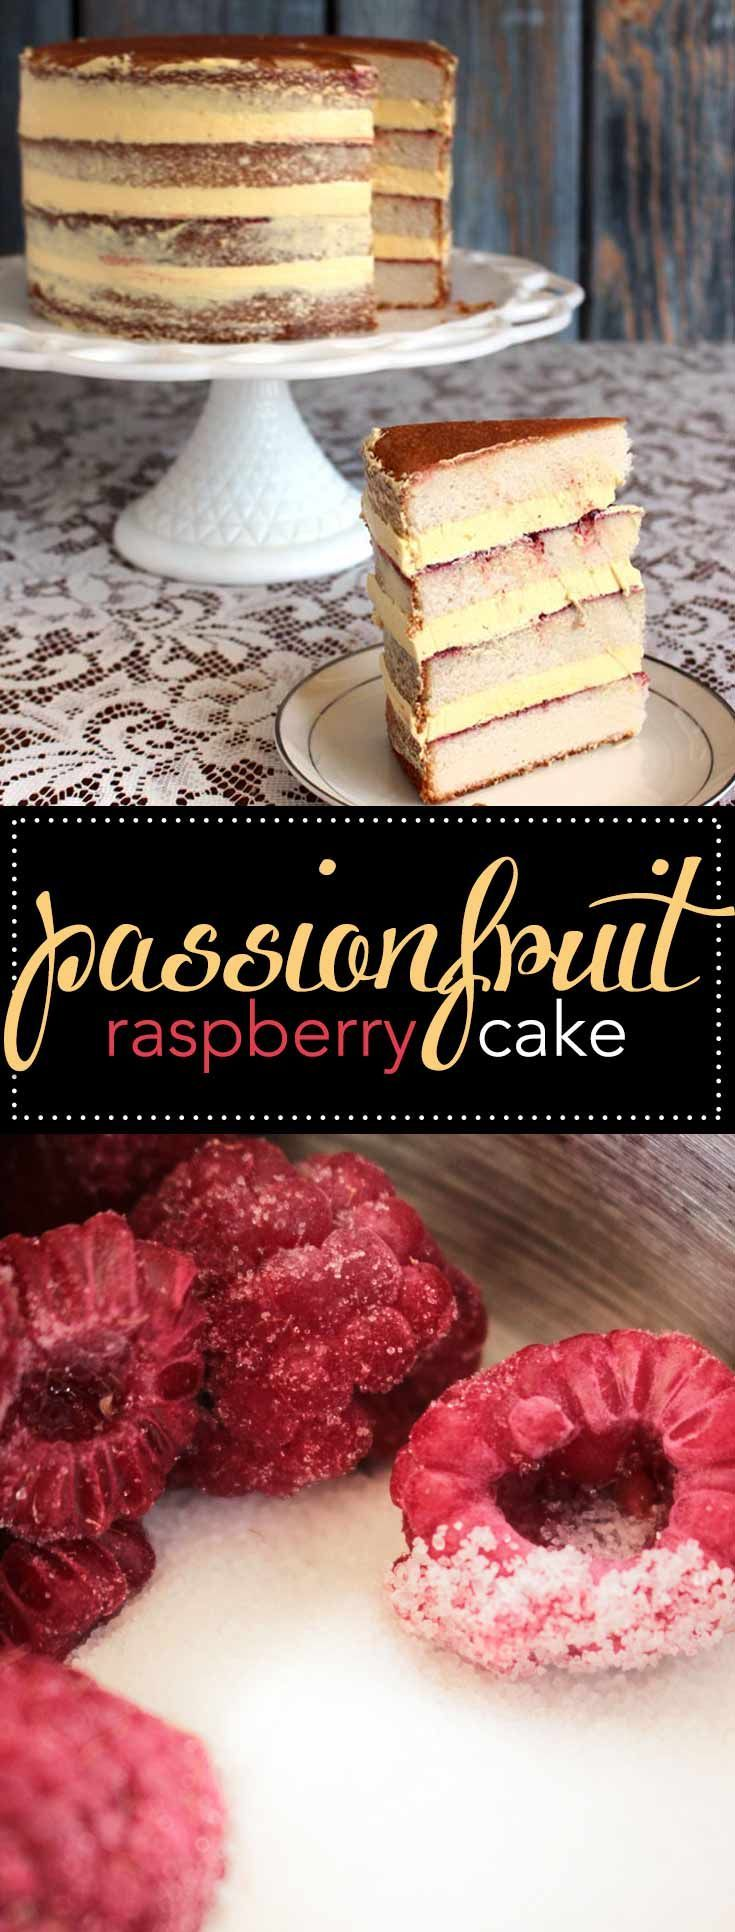 Home Of Fabulous Cakes Episode